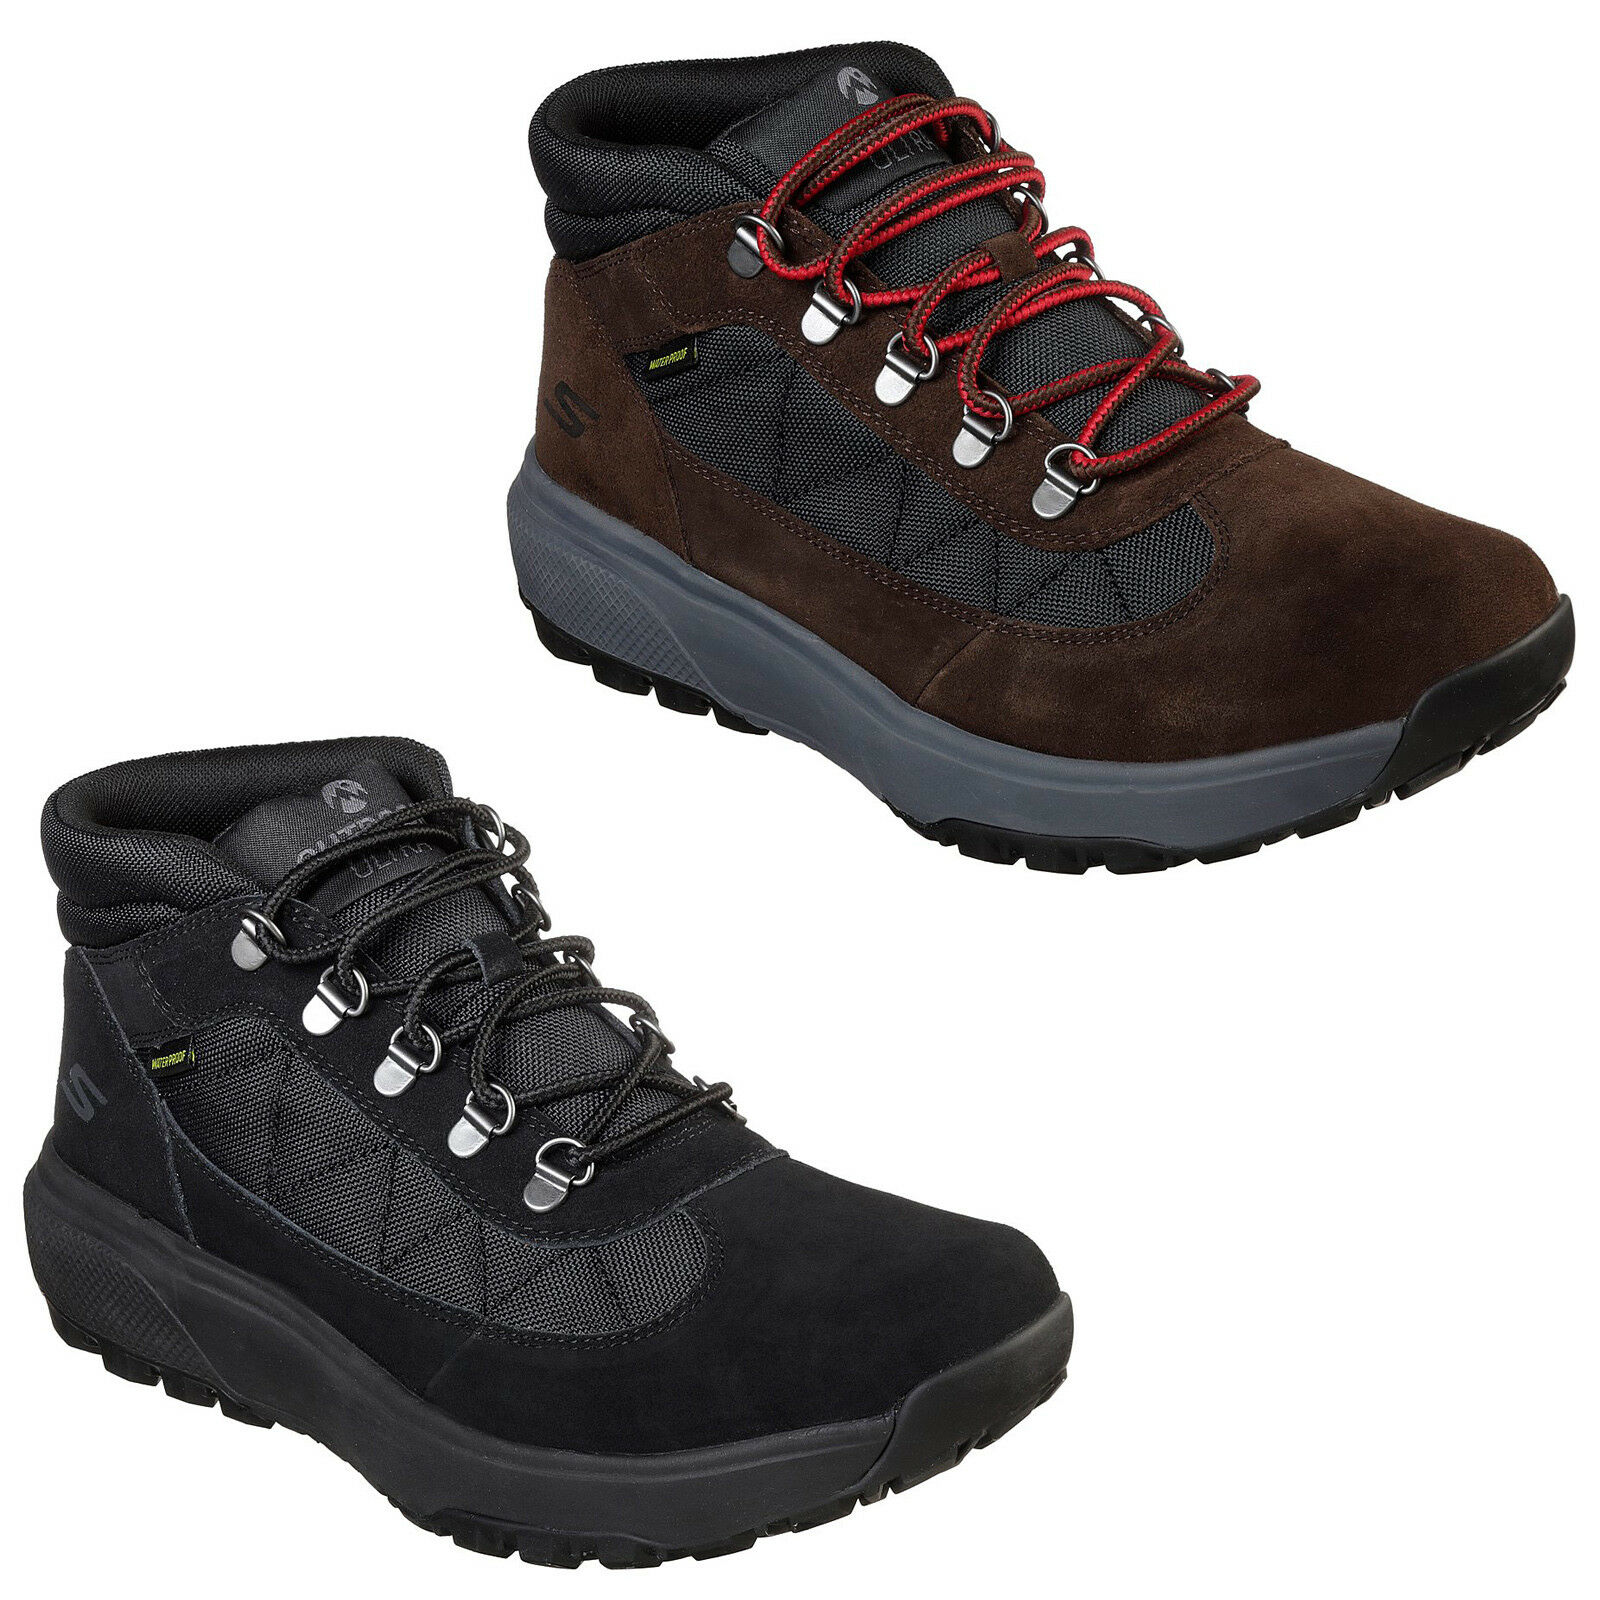 Skechers Go Outdoors Ultra - Adventures Schuhes Trail Walking Stiefel  Herren 55487